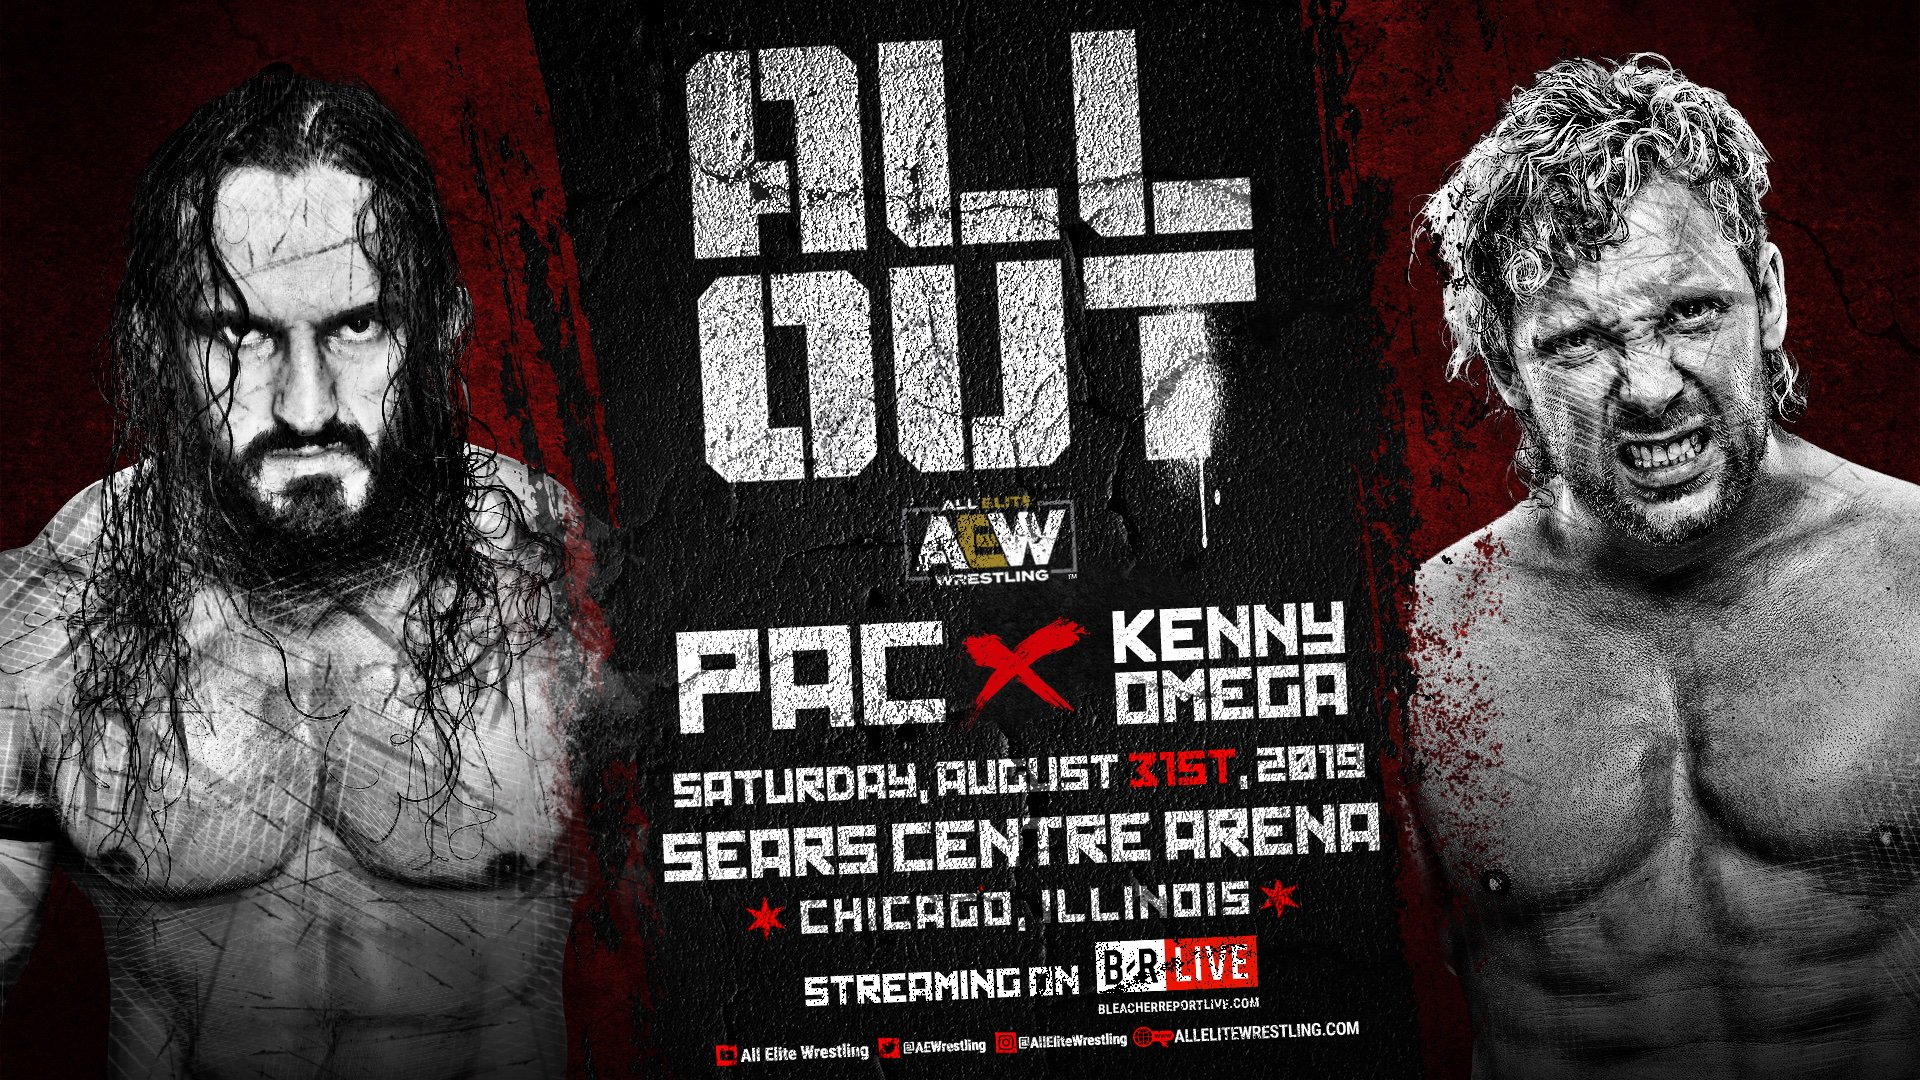 Pac vs. Kenny Omega announced for All Out